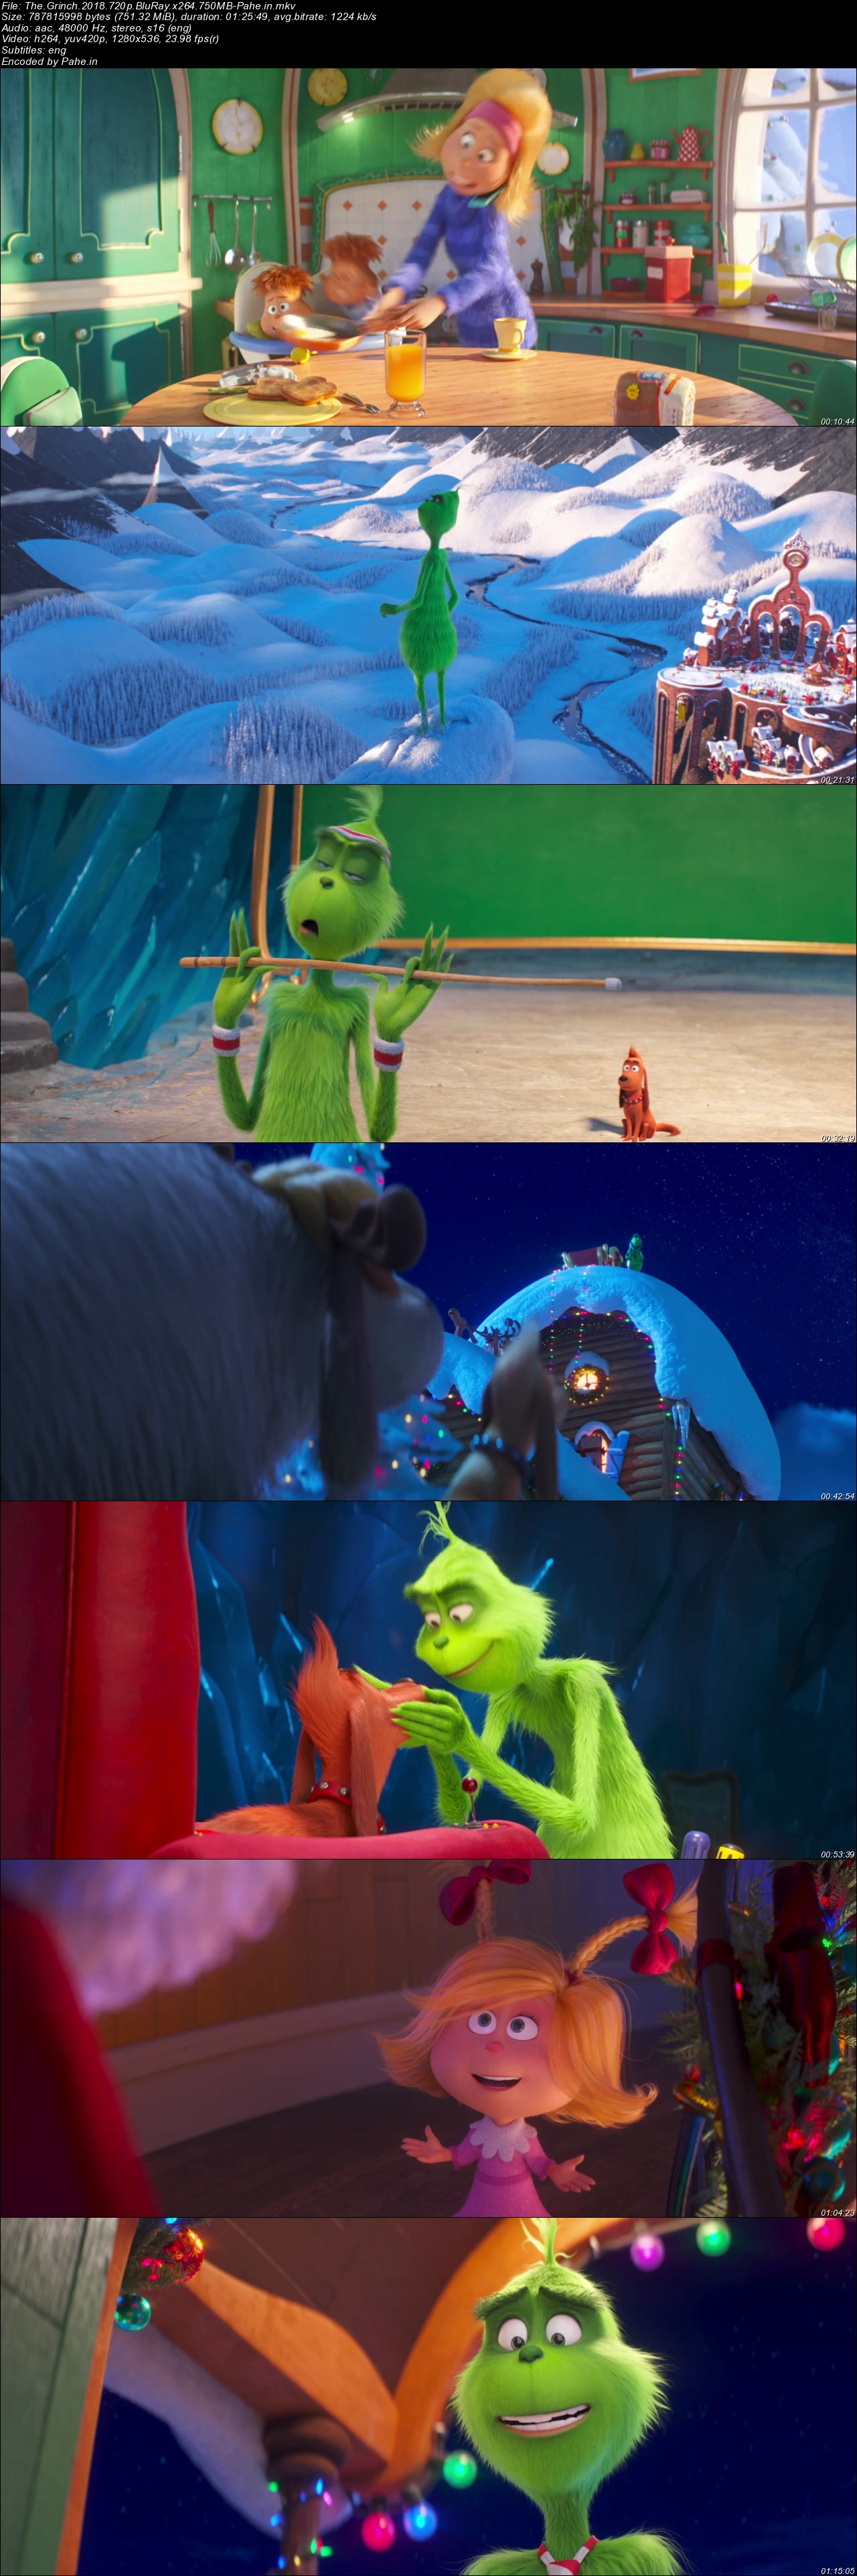 The Grinch (2018) BluRay 480p & 720p - Pahe in